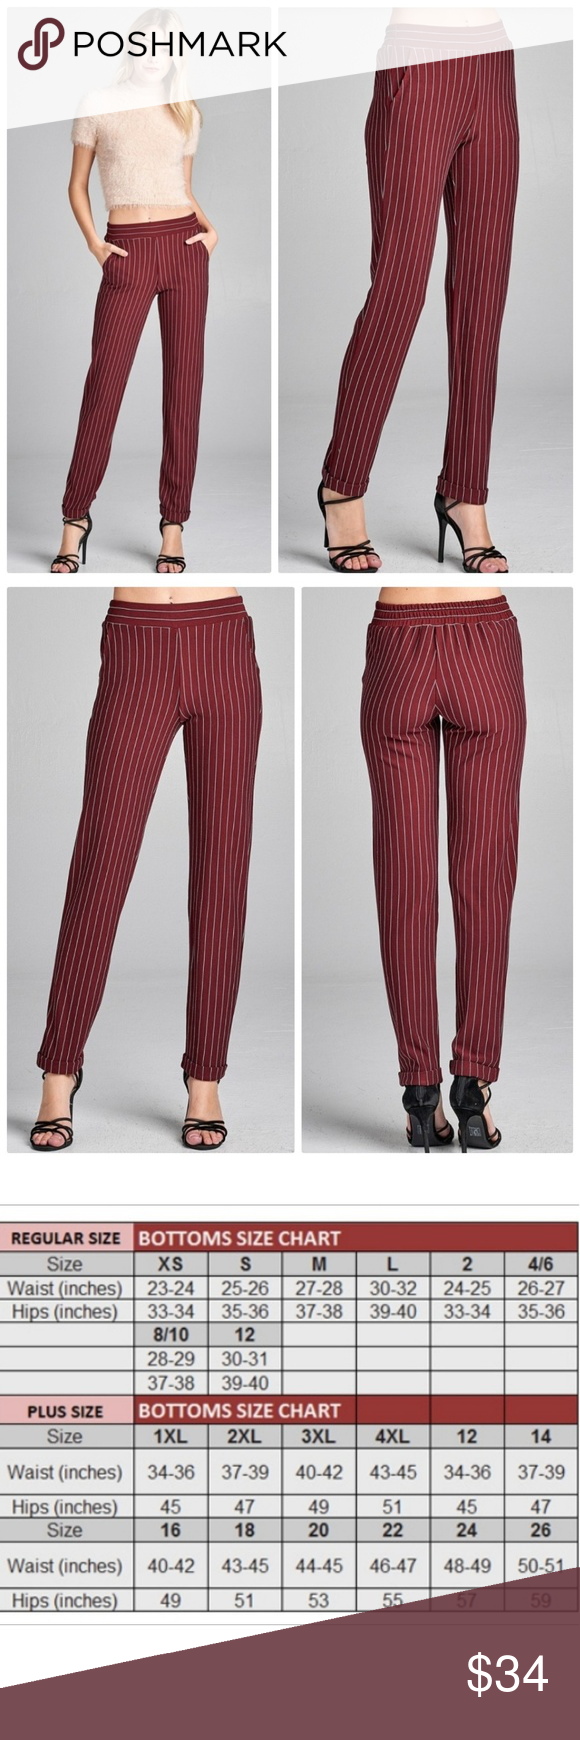 How To Hem Pants With A Cuff Deep Red Pin Stripe Elastic Waist Cuff Hem Pants Deep Red Pin Stripe Elastic Waist Cuff Hem Pants 76 Rayon 21 Polyester 3 Spandex My Posh Picks Jeans